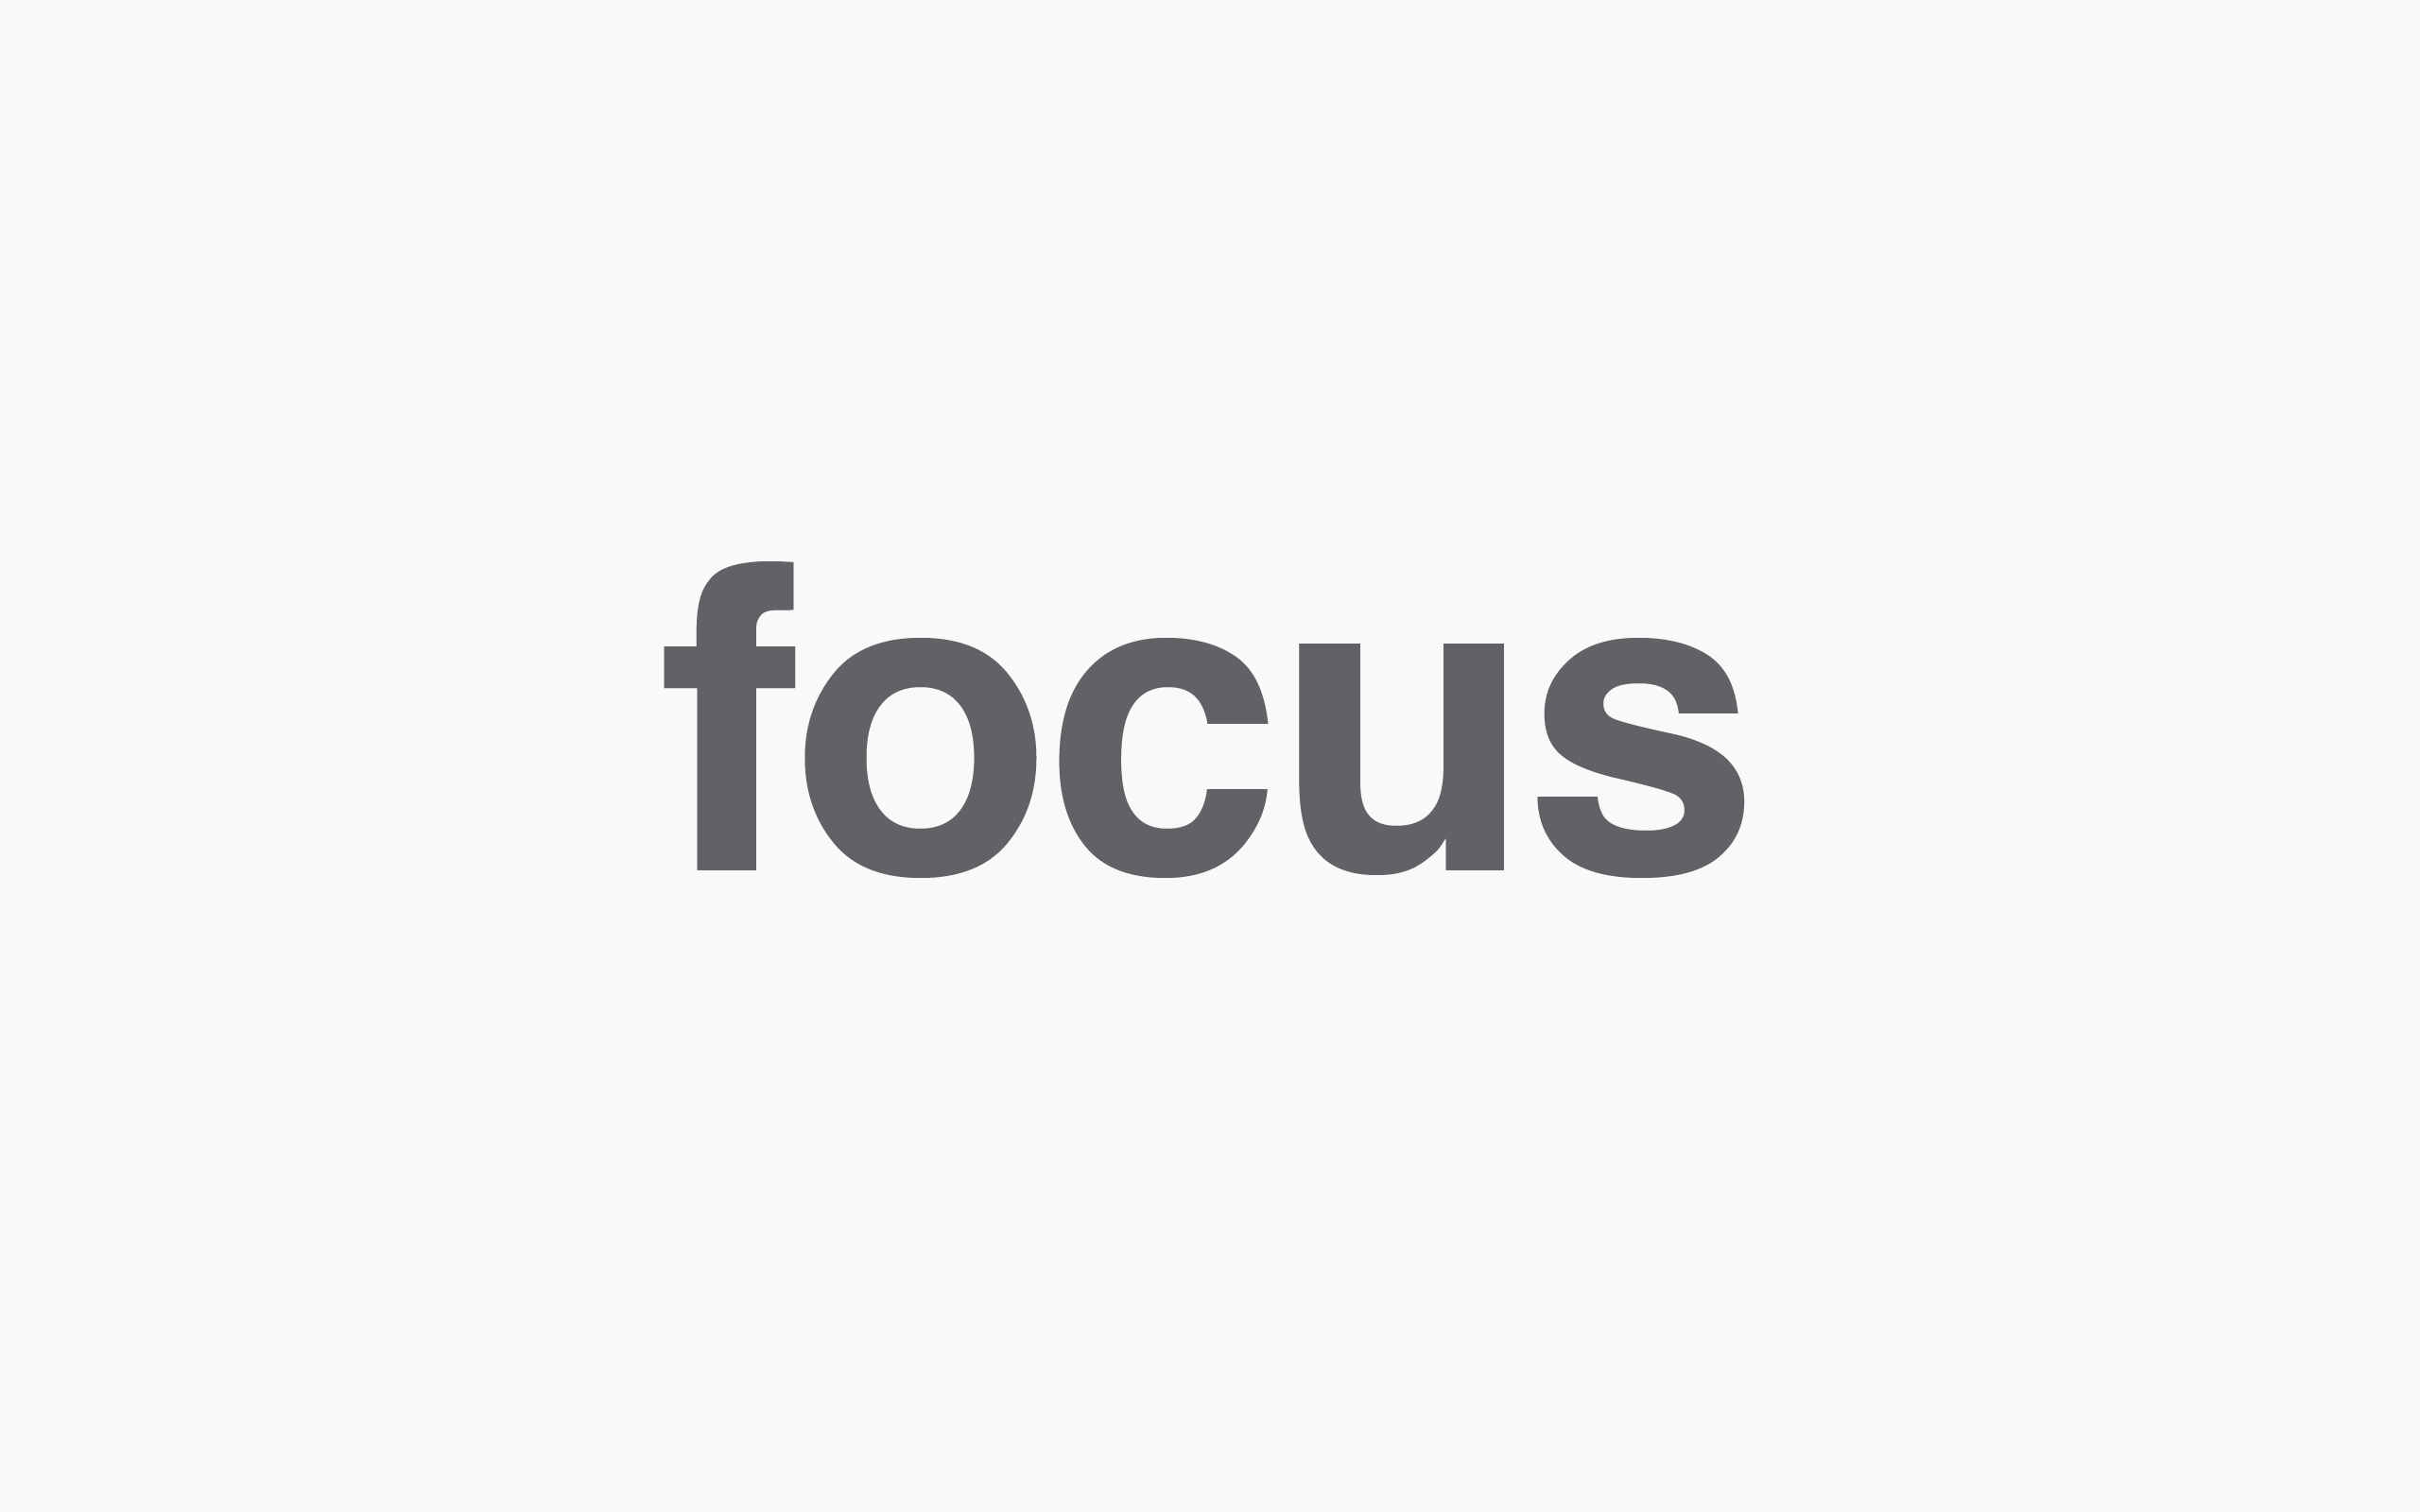 Focus HD | Focus HD Images, Pictures, Wallpapers on B.SCB